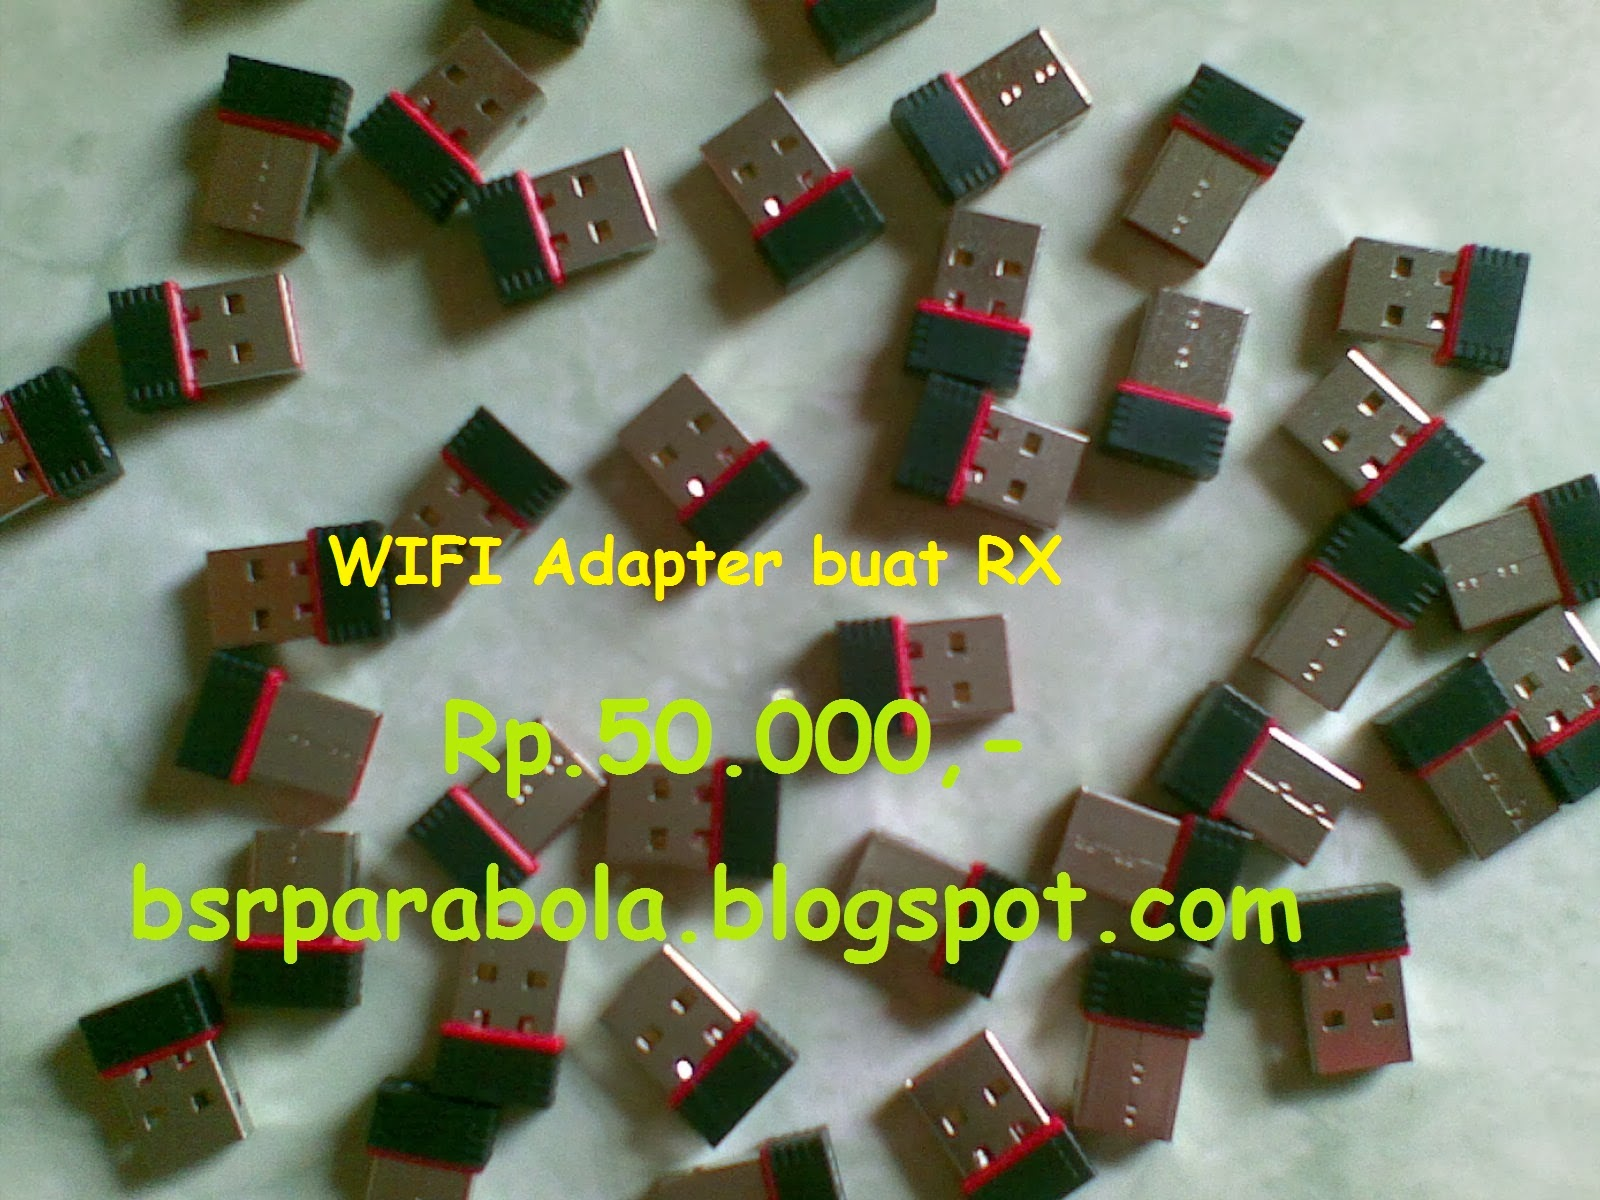 Wifi Adapter buat RX